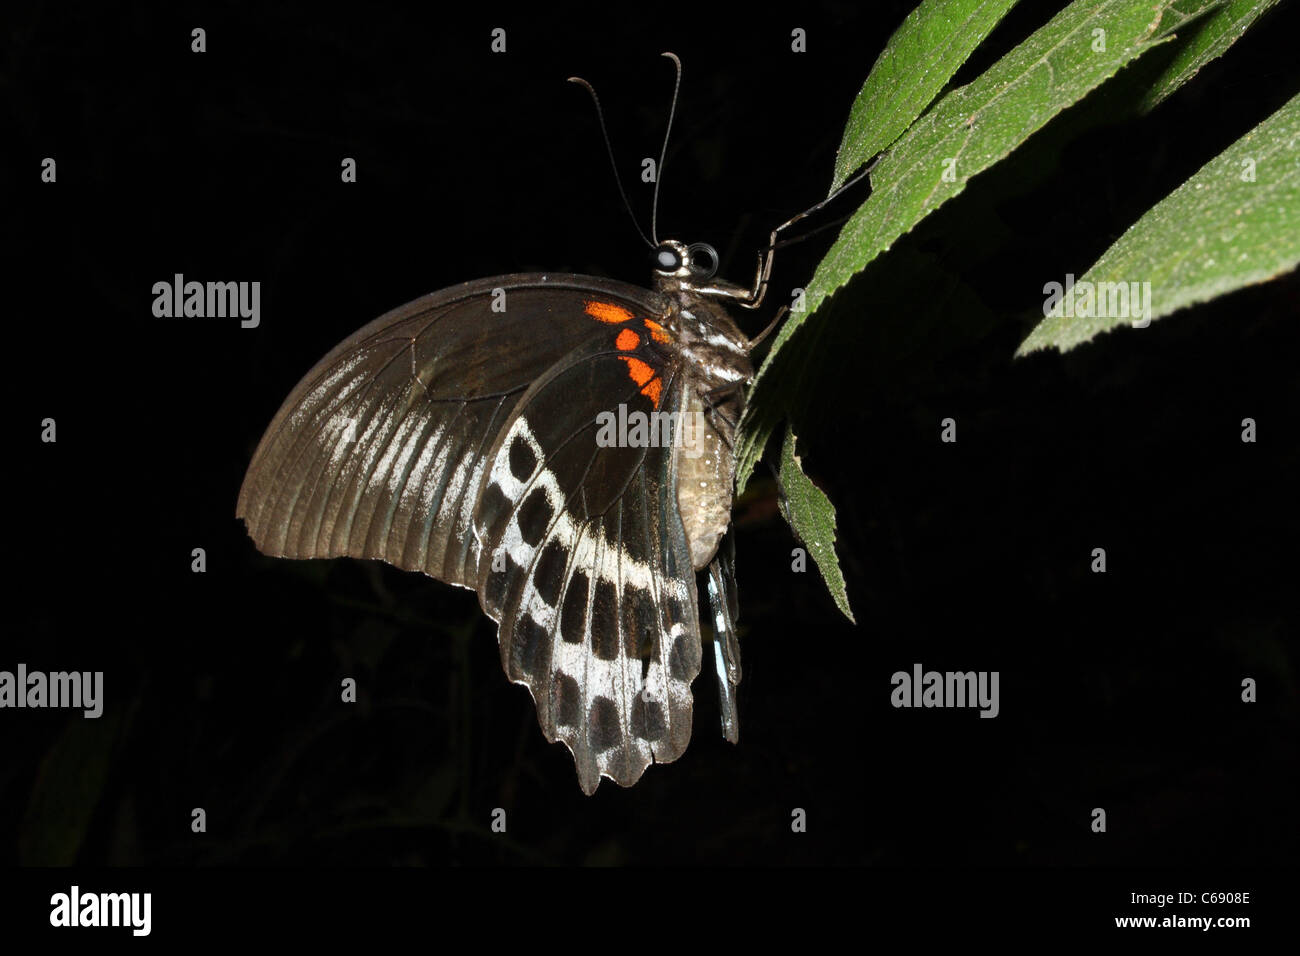 BLUE MORMON BUTTERFLY Papilio polymnestor Papilionidae : Swallowtails - Stock Image